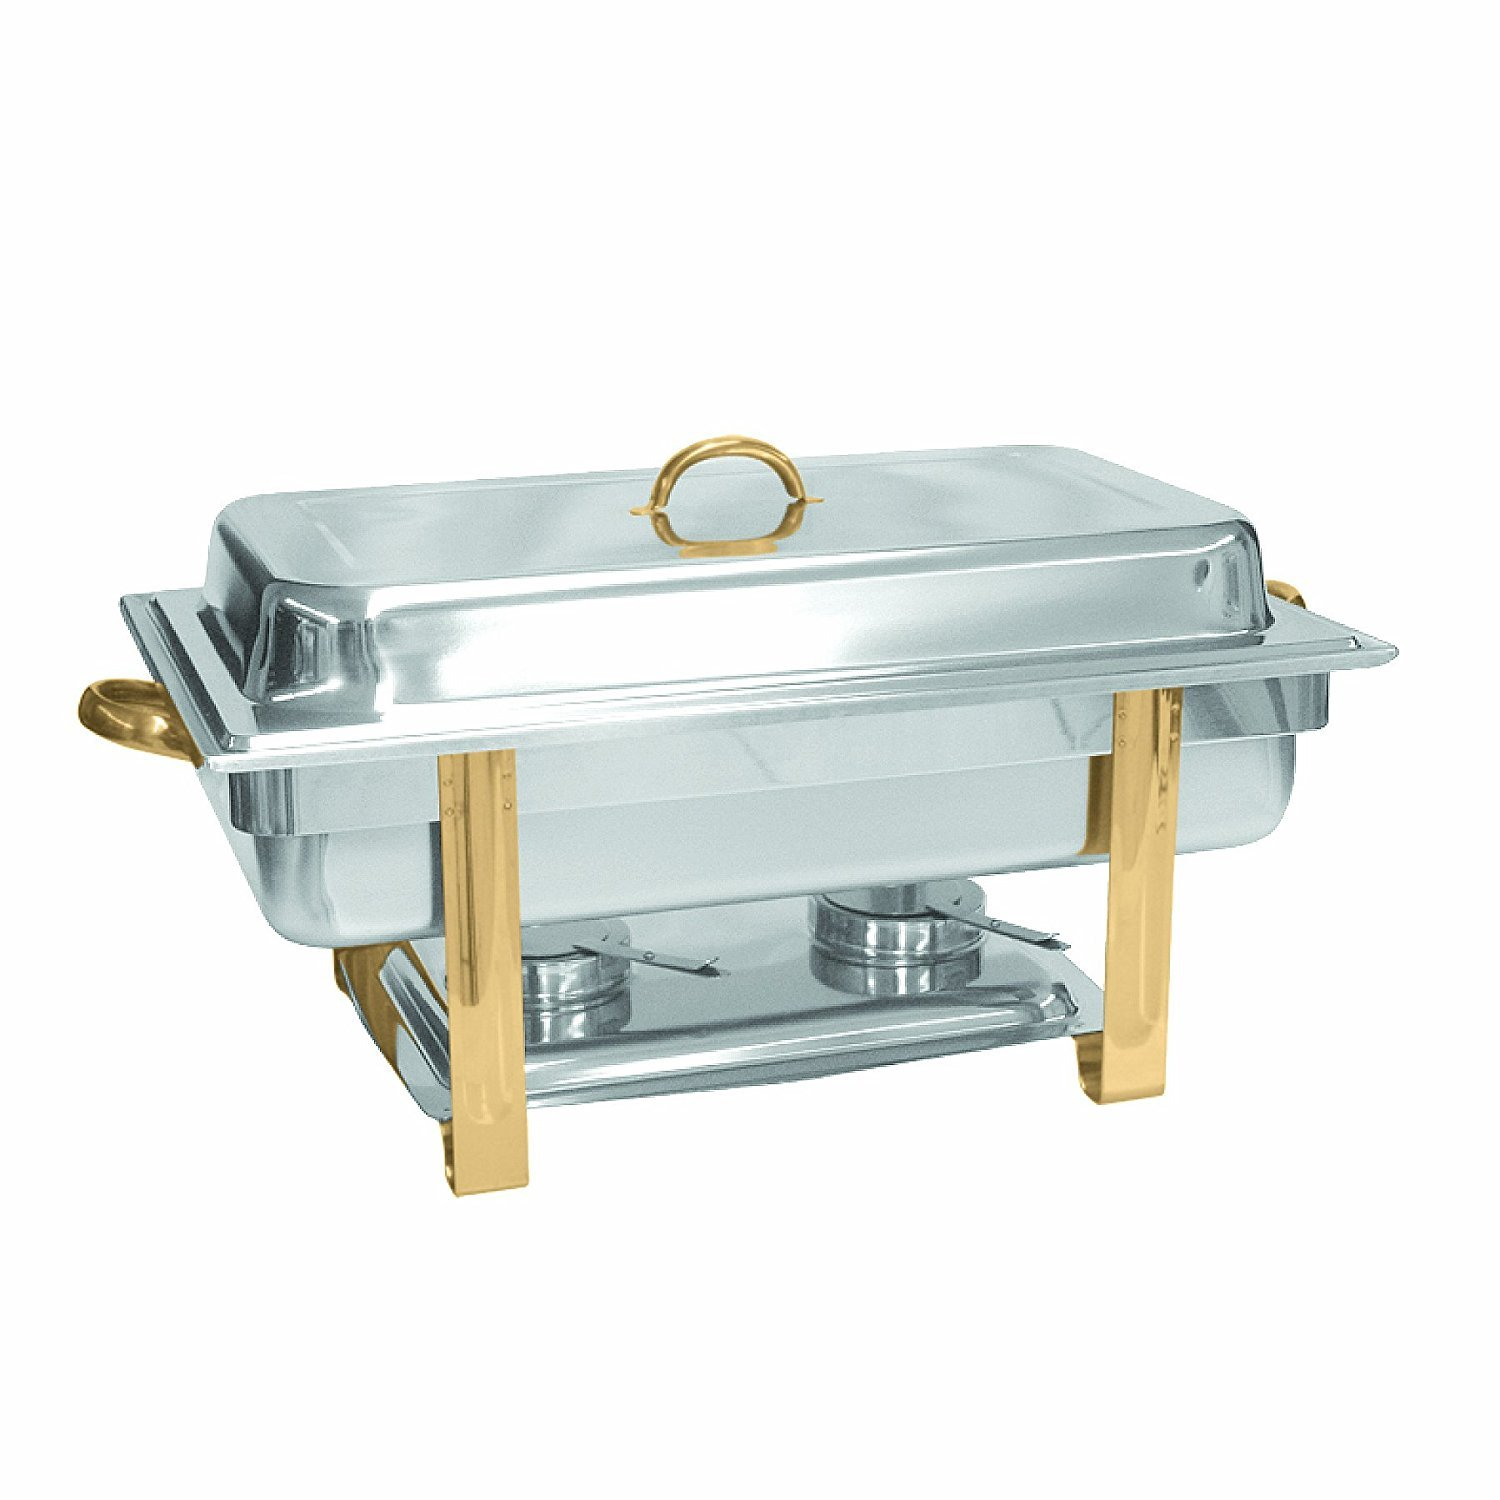 Tiger Chef 8 Quart Full Size Buffet Chafing Dish Set with Gold Accents and Gel Fuel Cans 0026-SLRCF0833GH